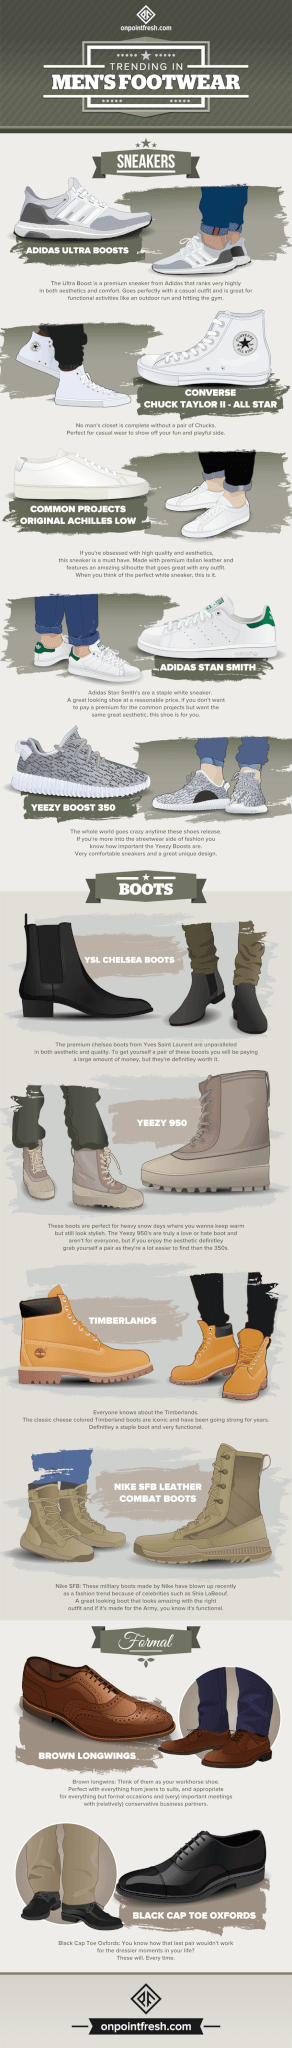 The 11 Must Have Shoes For Men  Infographic  - OnPointFresh 7cd0d98de